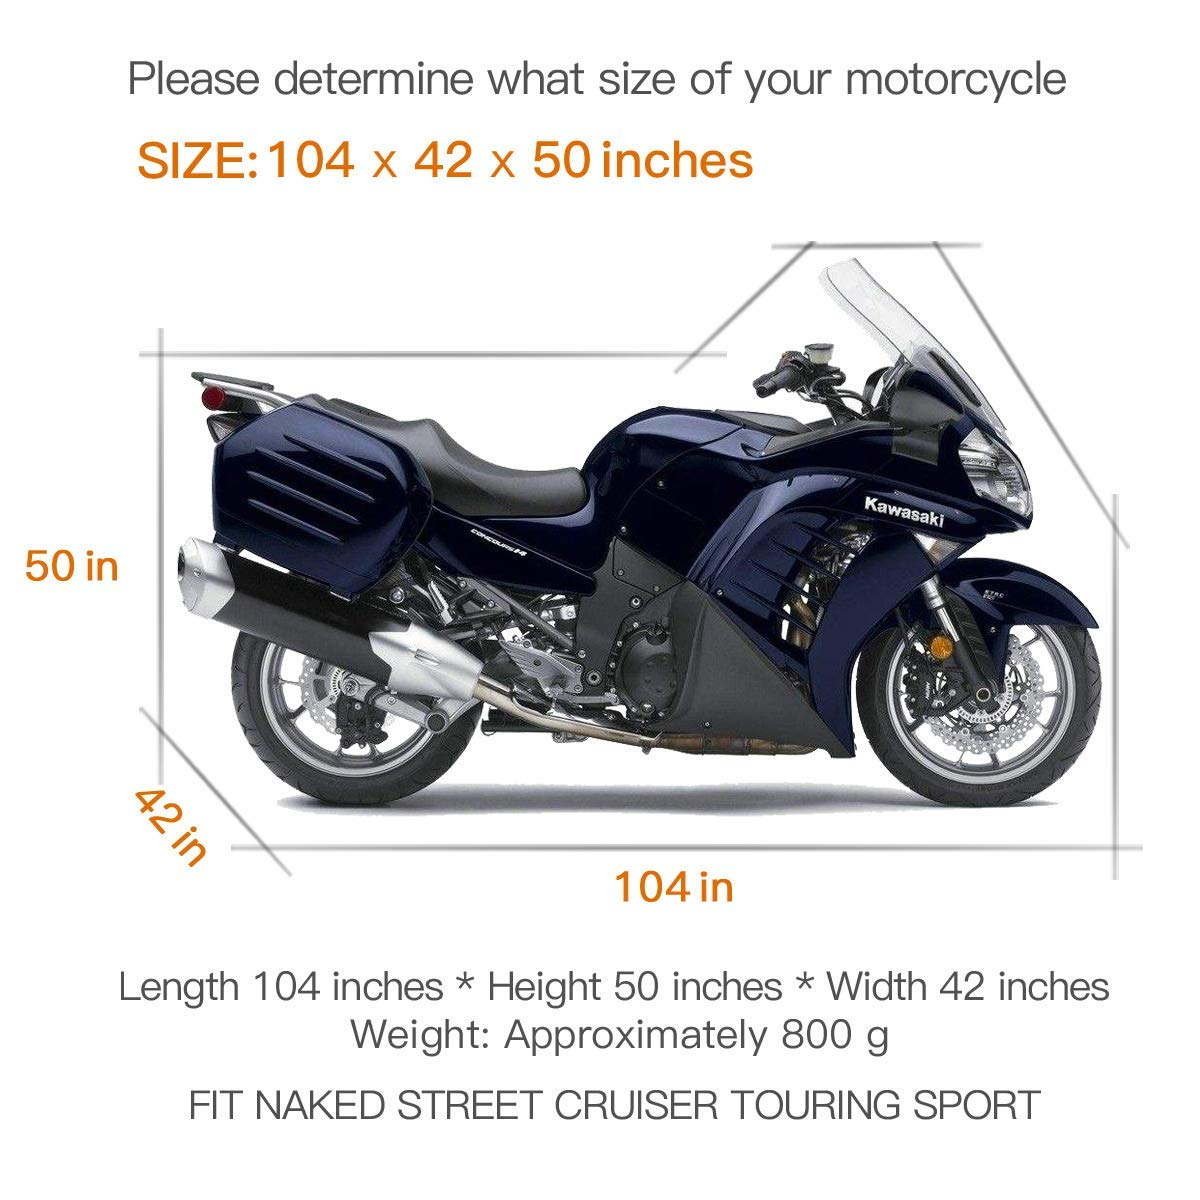 Waterproof Motorcycle Cover, All Weather Outdoor Protection, 210D Oxford  Durable and Tear Proof for 104 inches XXL Motorcycles like Honda, Yamaha,